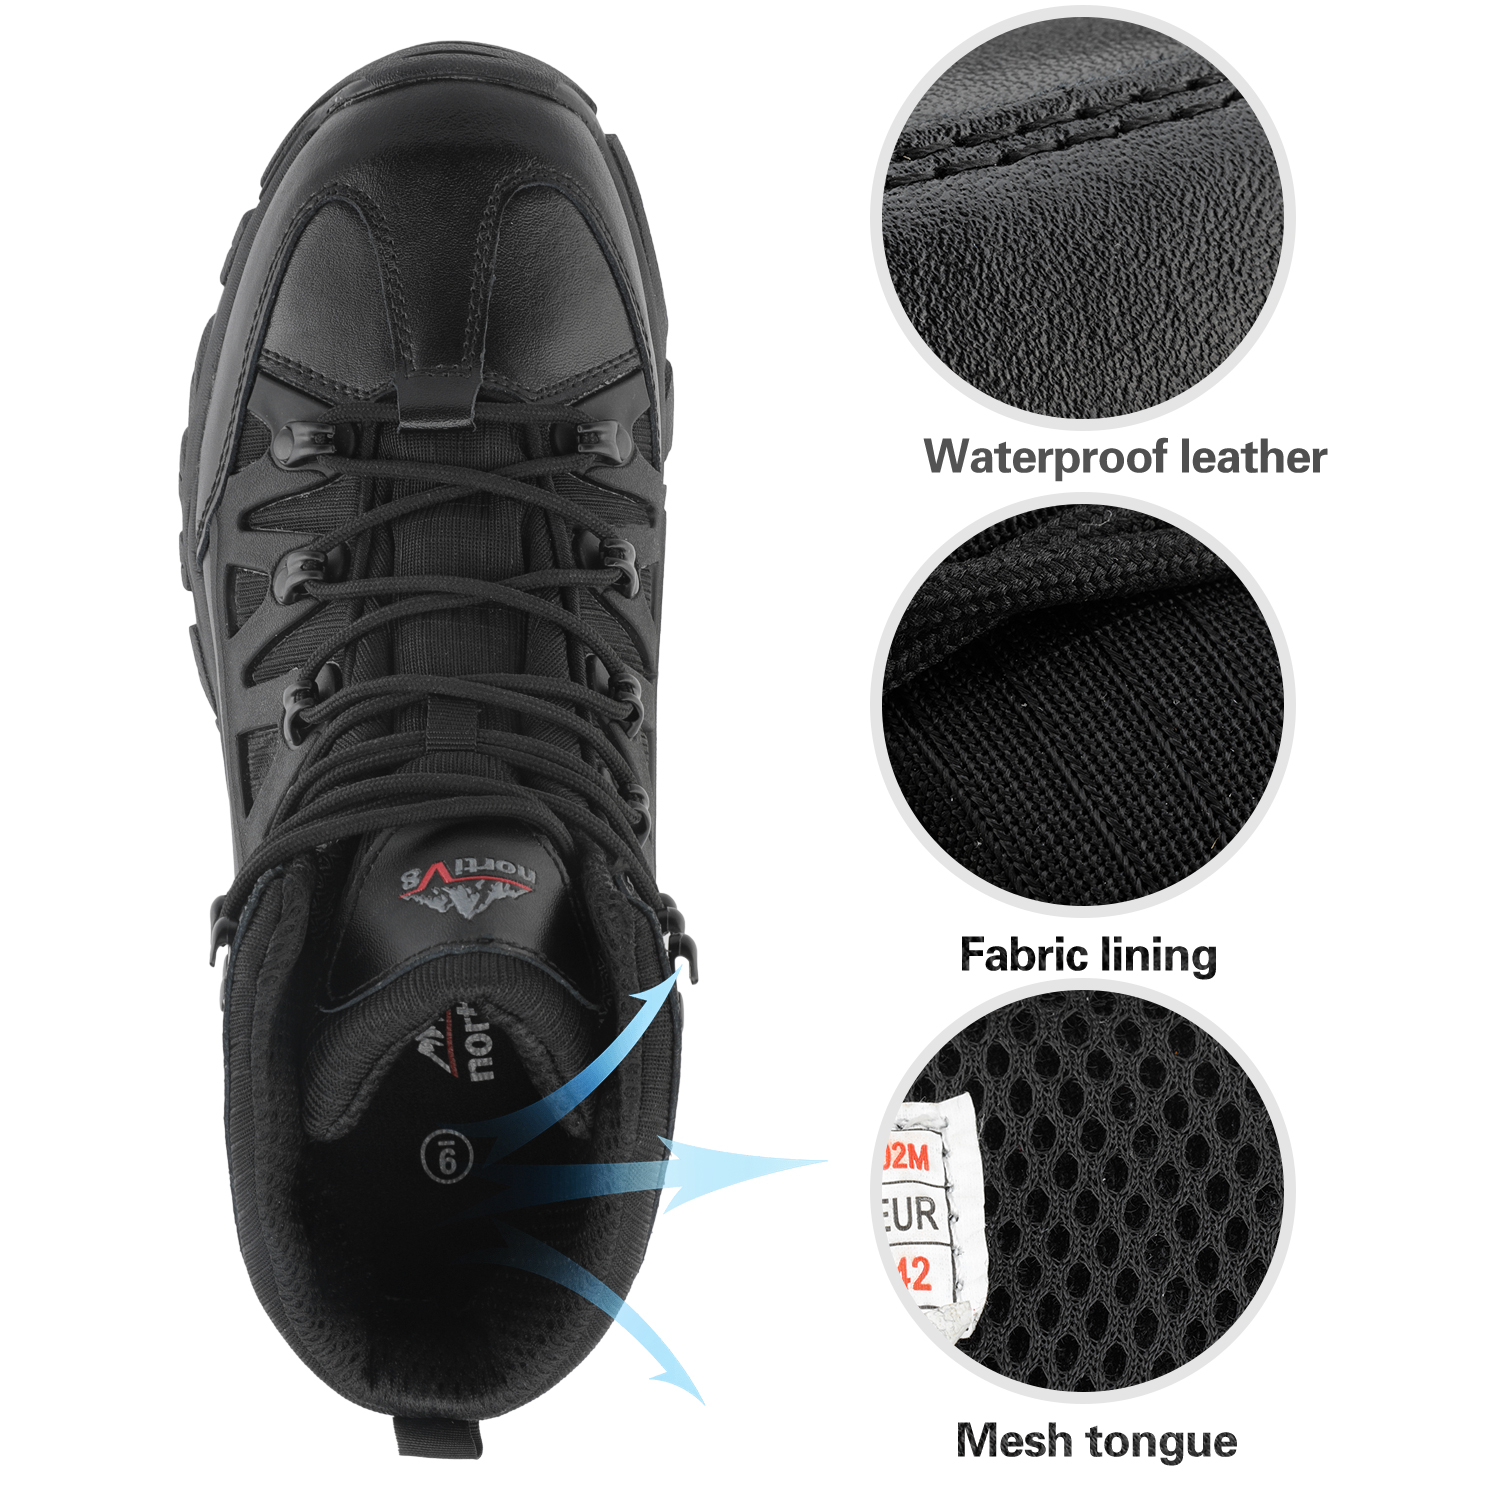 NORTIV-8-Men-039-s-Ankle-Waterproof-Hiking-Boots-Lightweight-Backpacking-Work-Shoes thumbnail 29